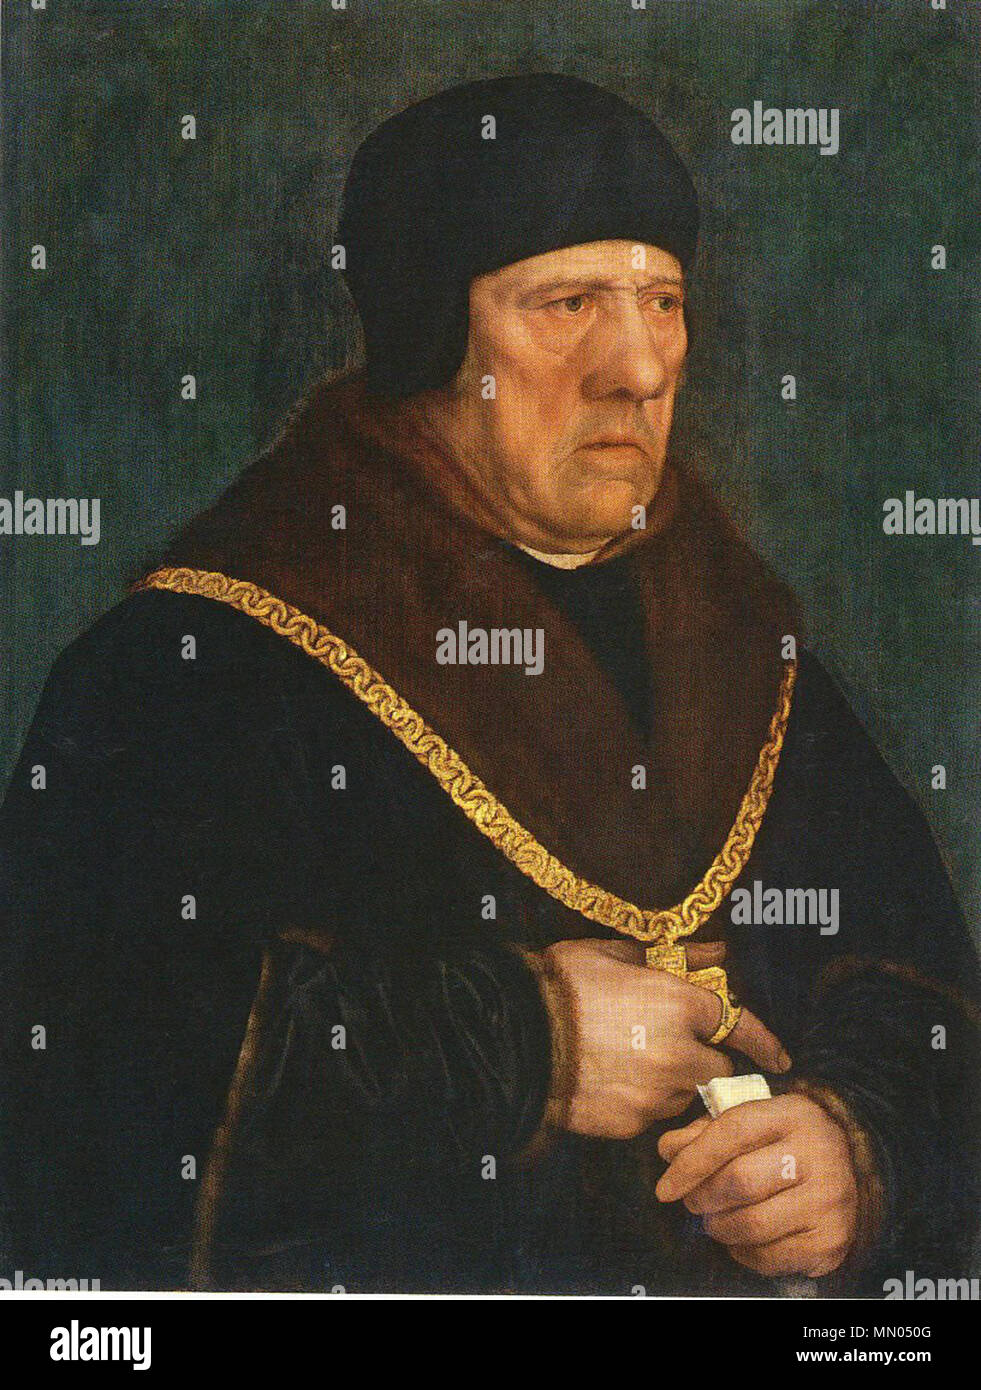 .  English: Sir Henry Wyatt (c. 1460/70–1537), was a Privy Councillor and Treasurer of the Chamber of Henry VIII and the father of the poet Sir Thomas Wyatt. Thomas Wyatt described his father's qualities as: 'wisdome, gentlenes, sobrenes, desire to do good, frendliness to get the love of manye, and trougth above all the rest'.[1] This portrait, once thought to have been painted during Holbein's first visit to England from 1526 to 1528, is now believed to have been painted towards the end of Sir Henry's life, at the same time as Holbein drew the portrait of his son. The sitter appears to have l - Stock Image